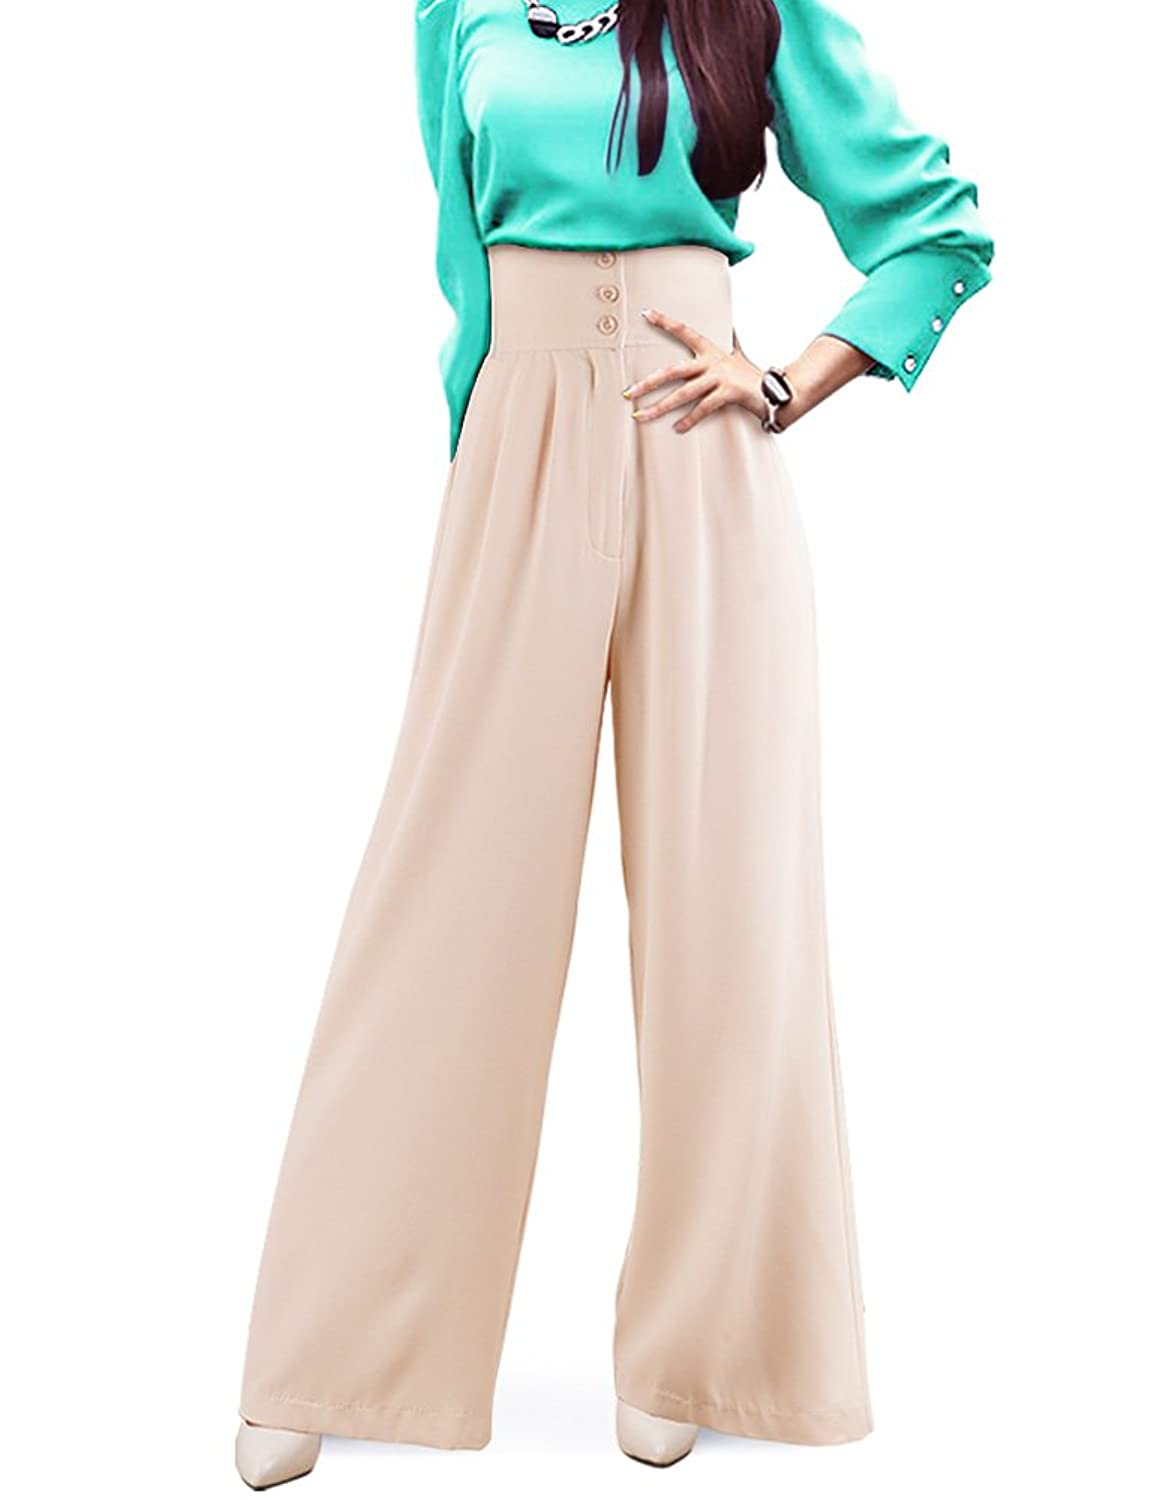 Vintage Wide Leg Pants 1920s to 1950s History DELUXSEY Silhouette-Lengthening High Waist Wide Leg Pants Palazzo Pants 4 Women $34.99 AT vintagedancer.com